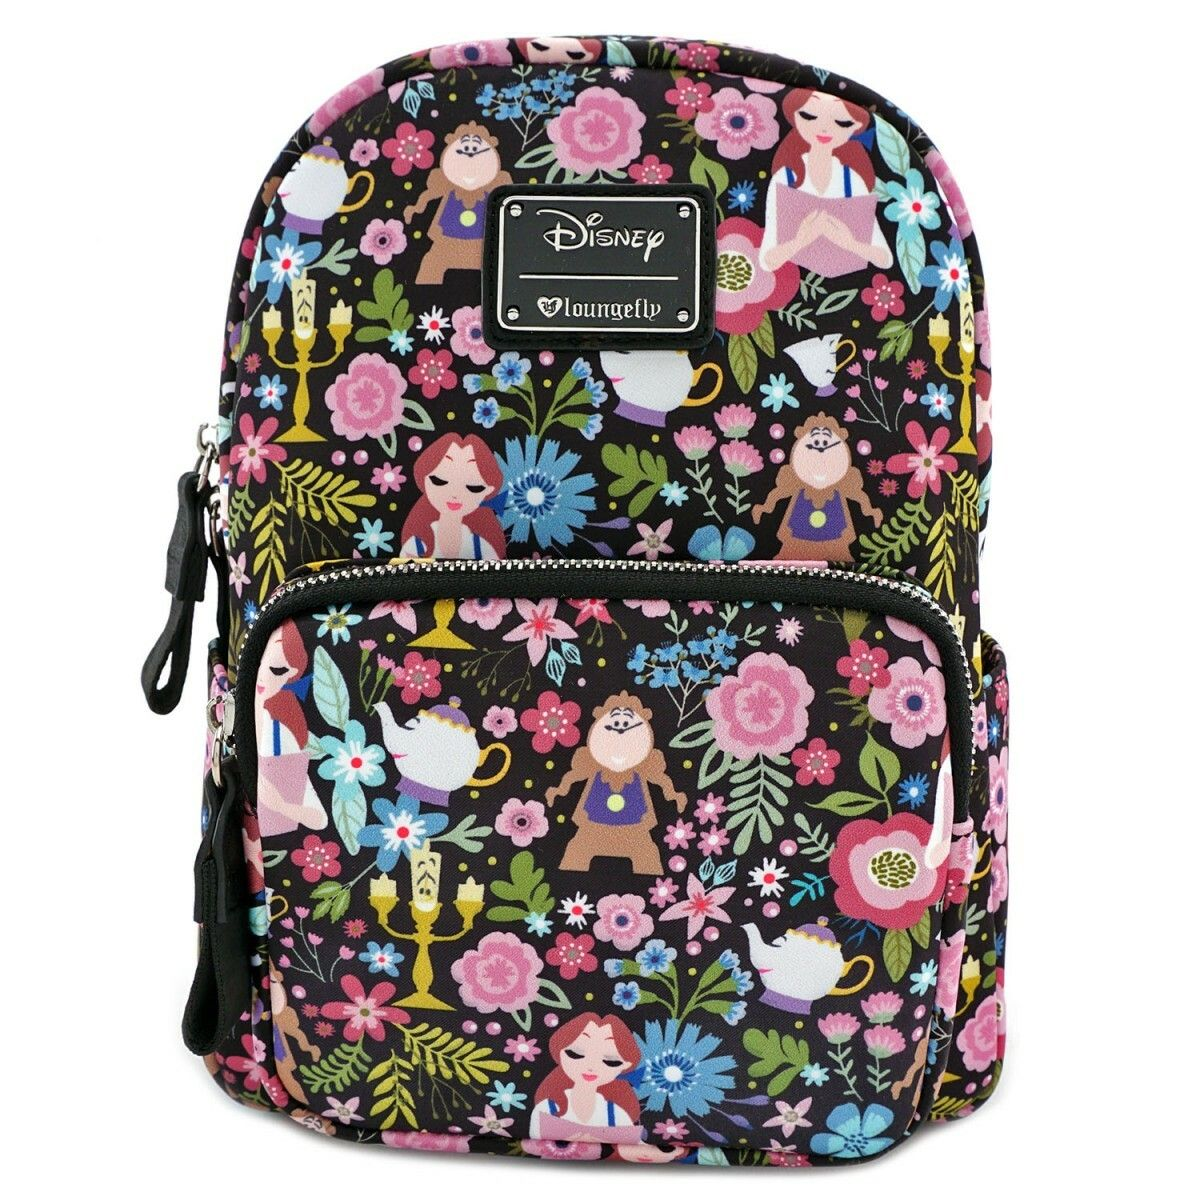 Loungefly Disney Beauty and the Beast Floral Print Mini